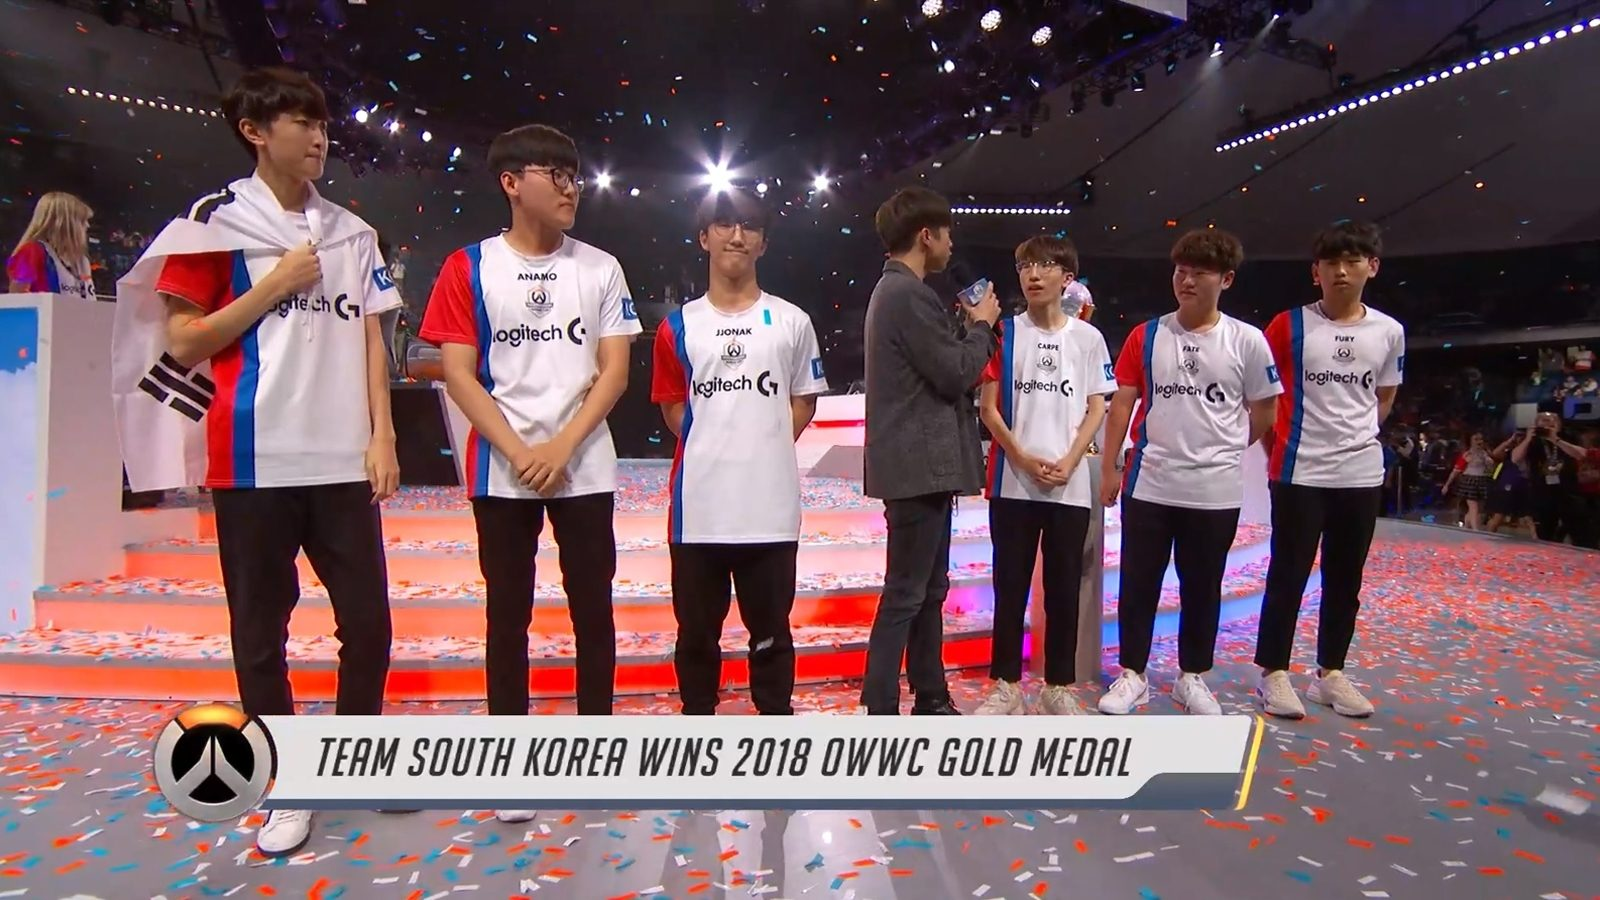 This is South Korea's third straight Overwatch World Cup victory.